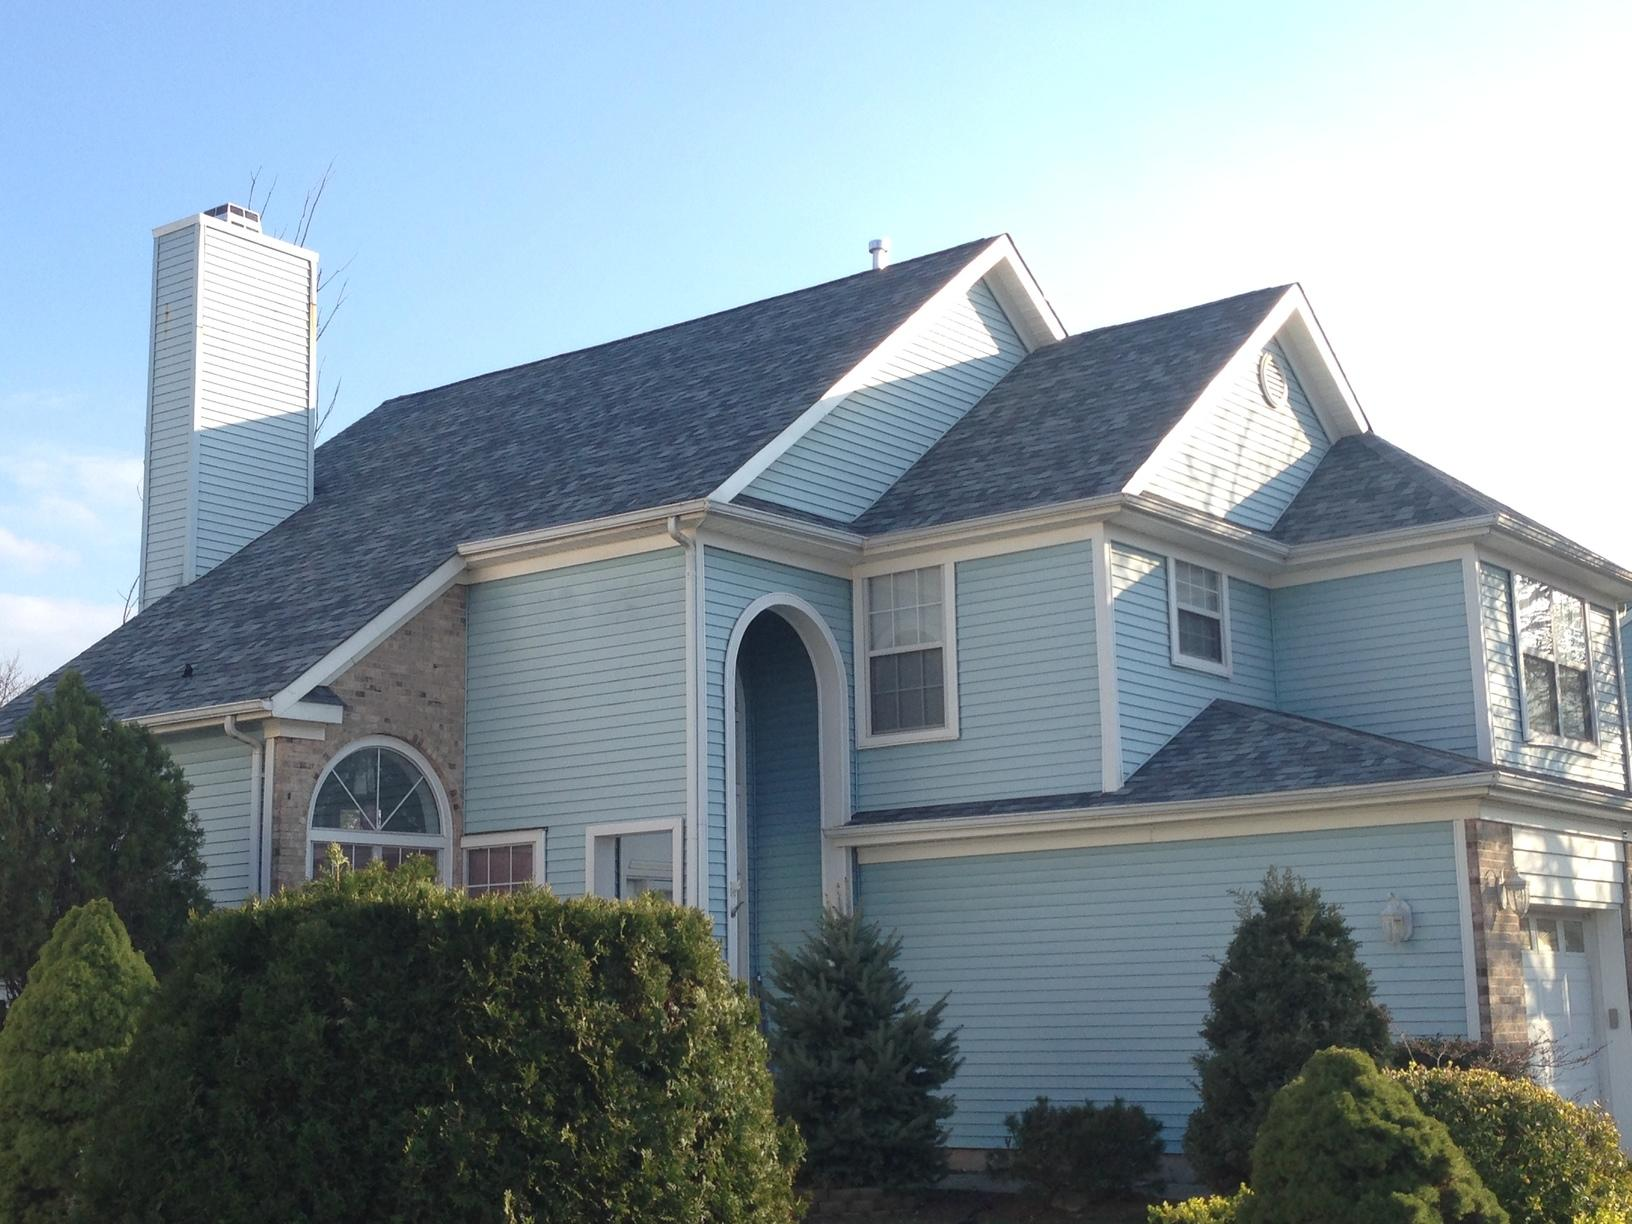 Sayreville NJ New Roof Replacement by More Core Construction - After Photo